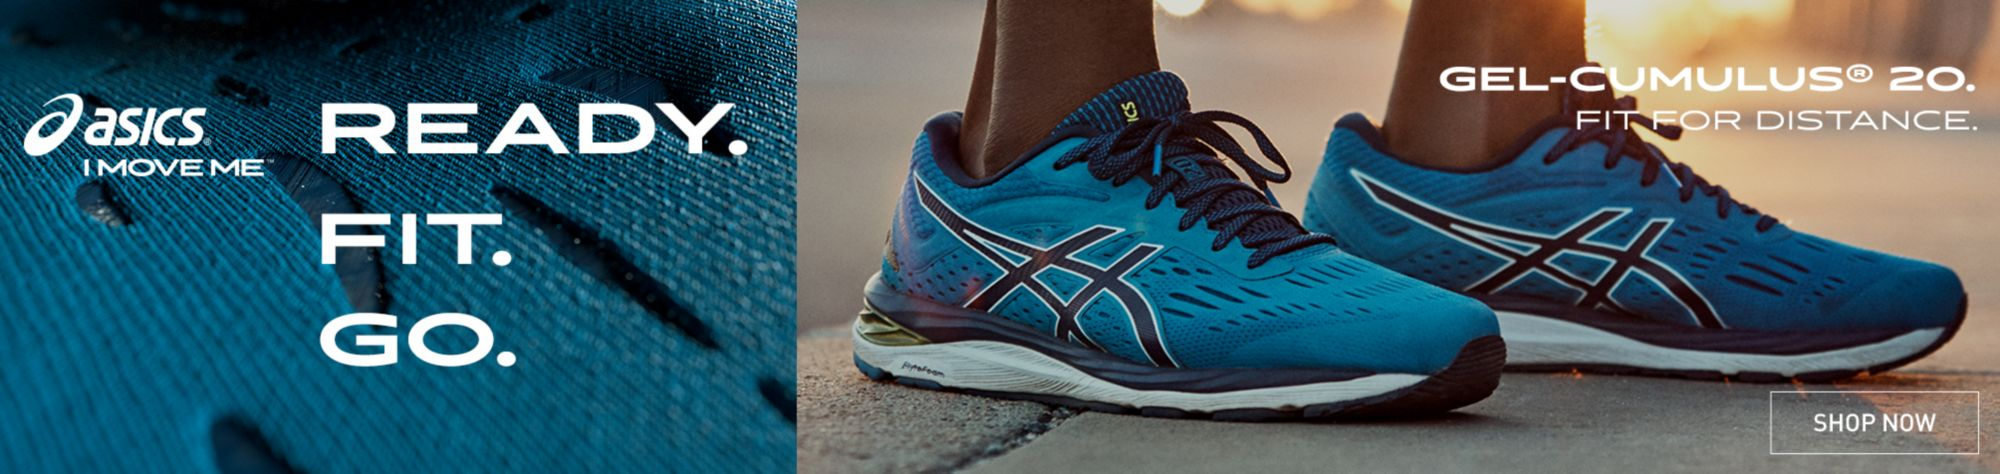 Shop New Asics Footwear